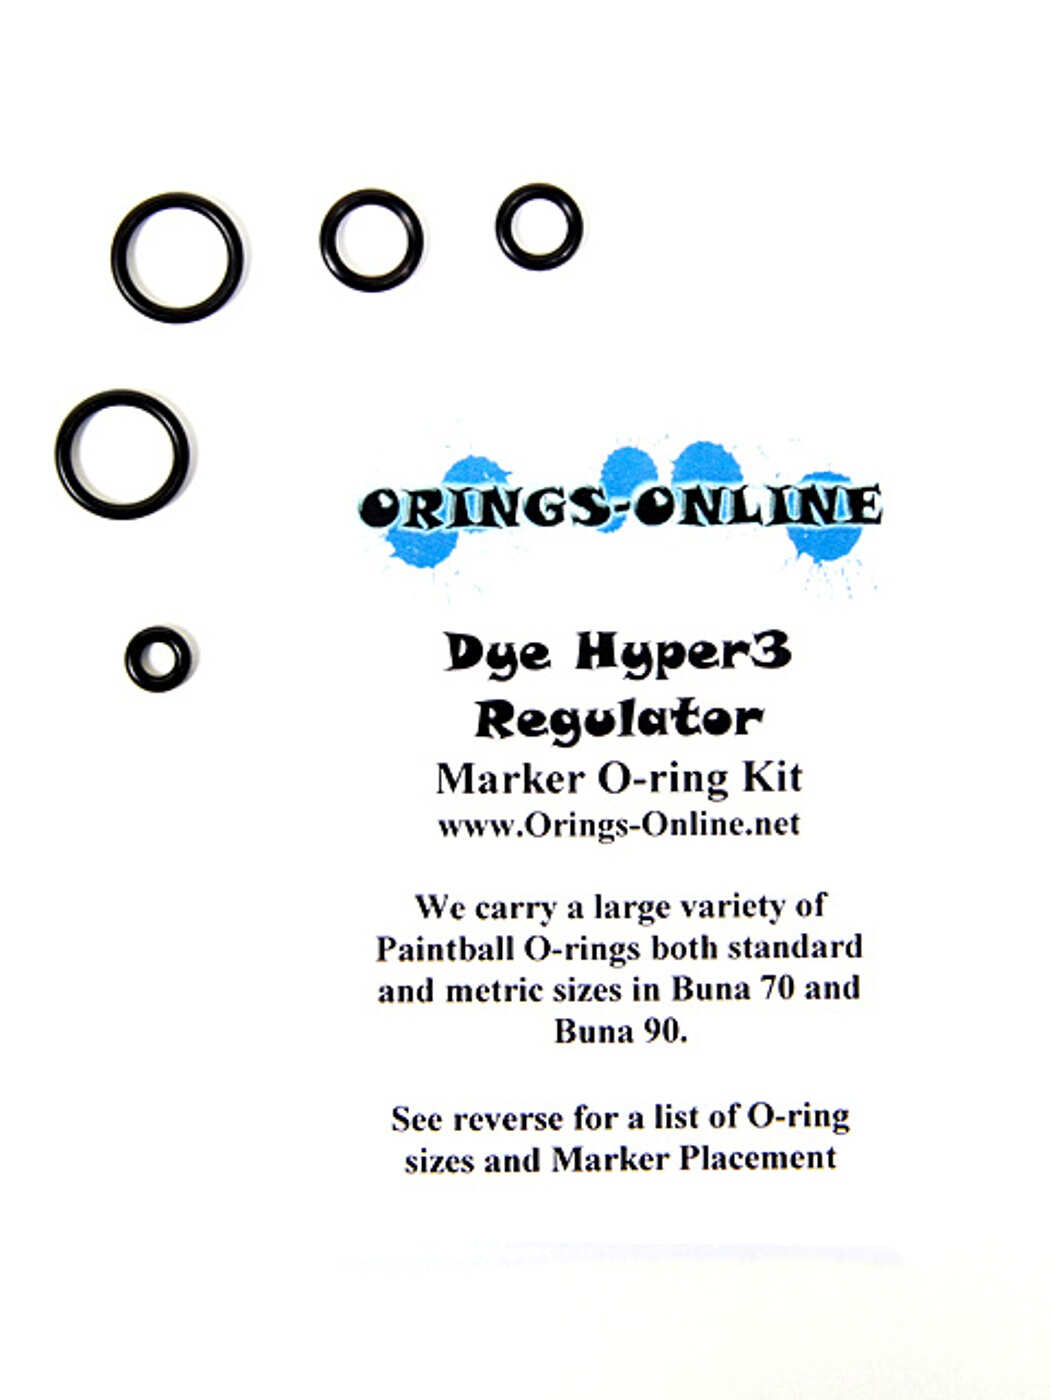 DYE Hyper 3 Regulator O-ring Kit